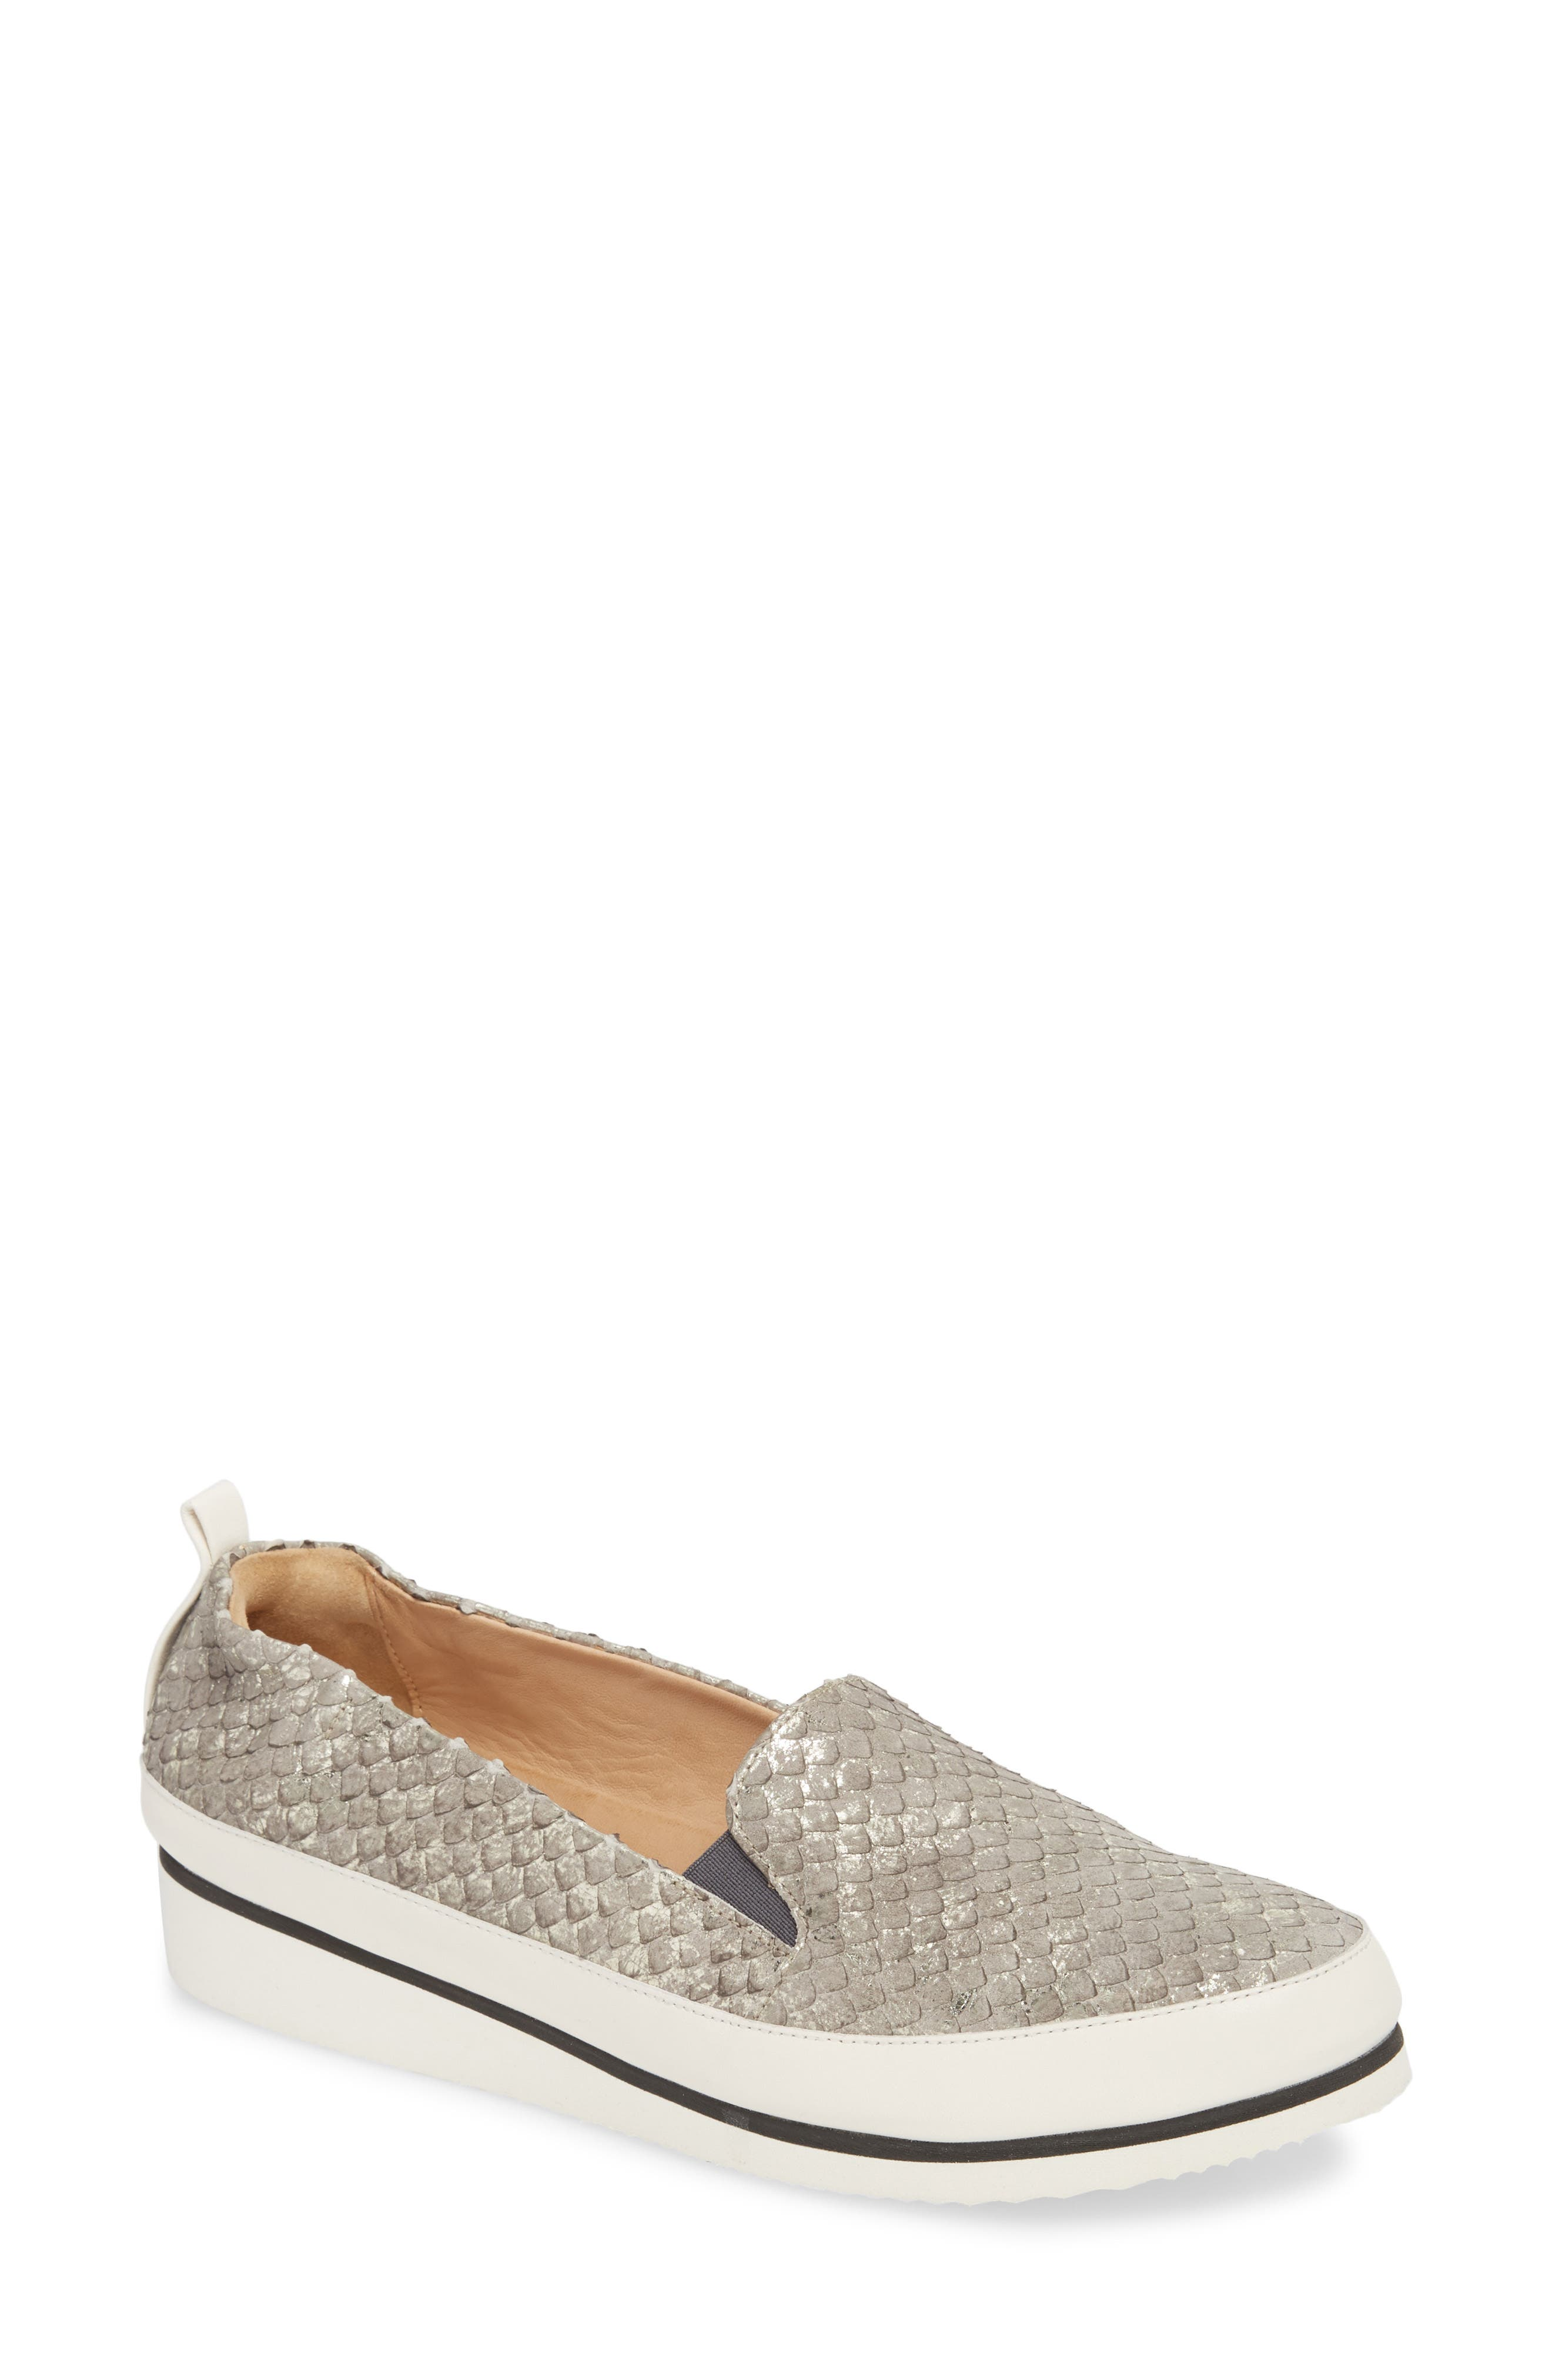 Nell Slip-On Sneaker,                         Main,                         color,